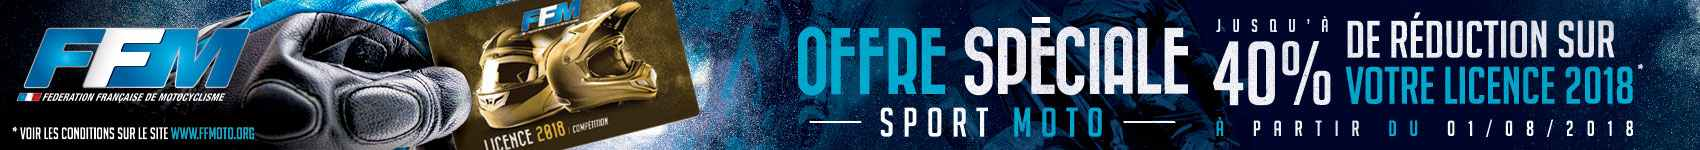 Licence offre speciale